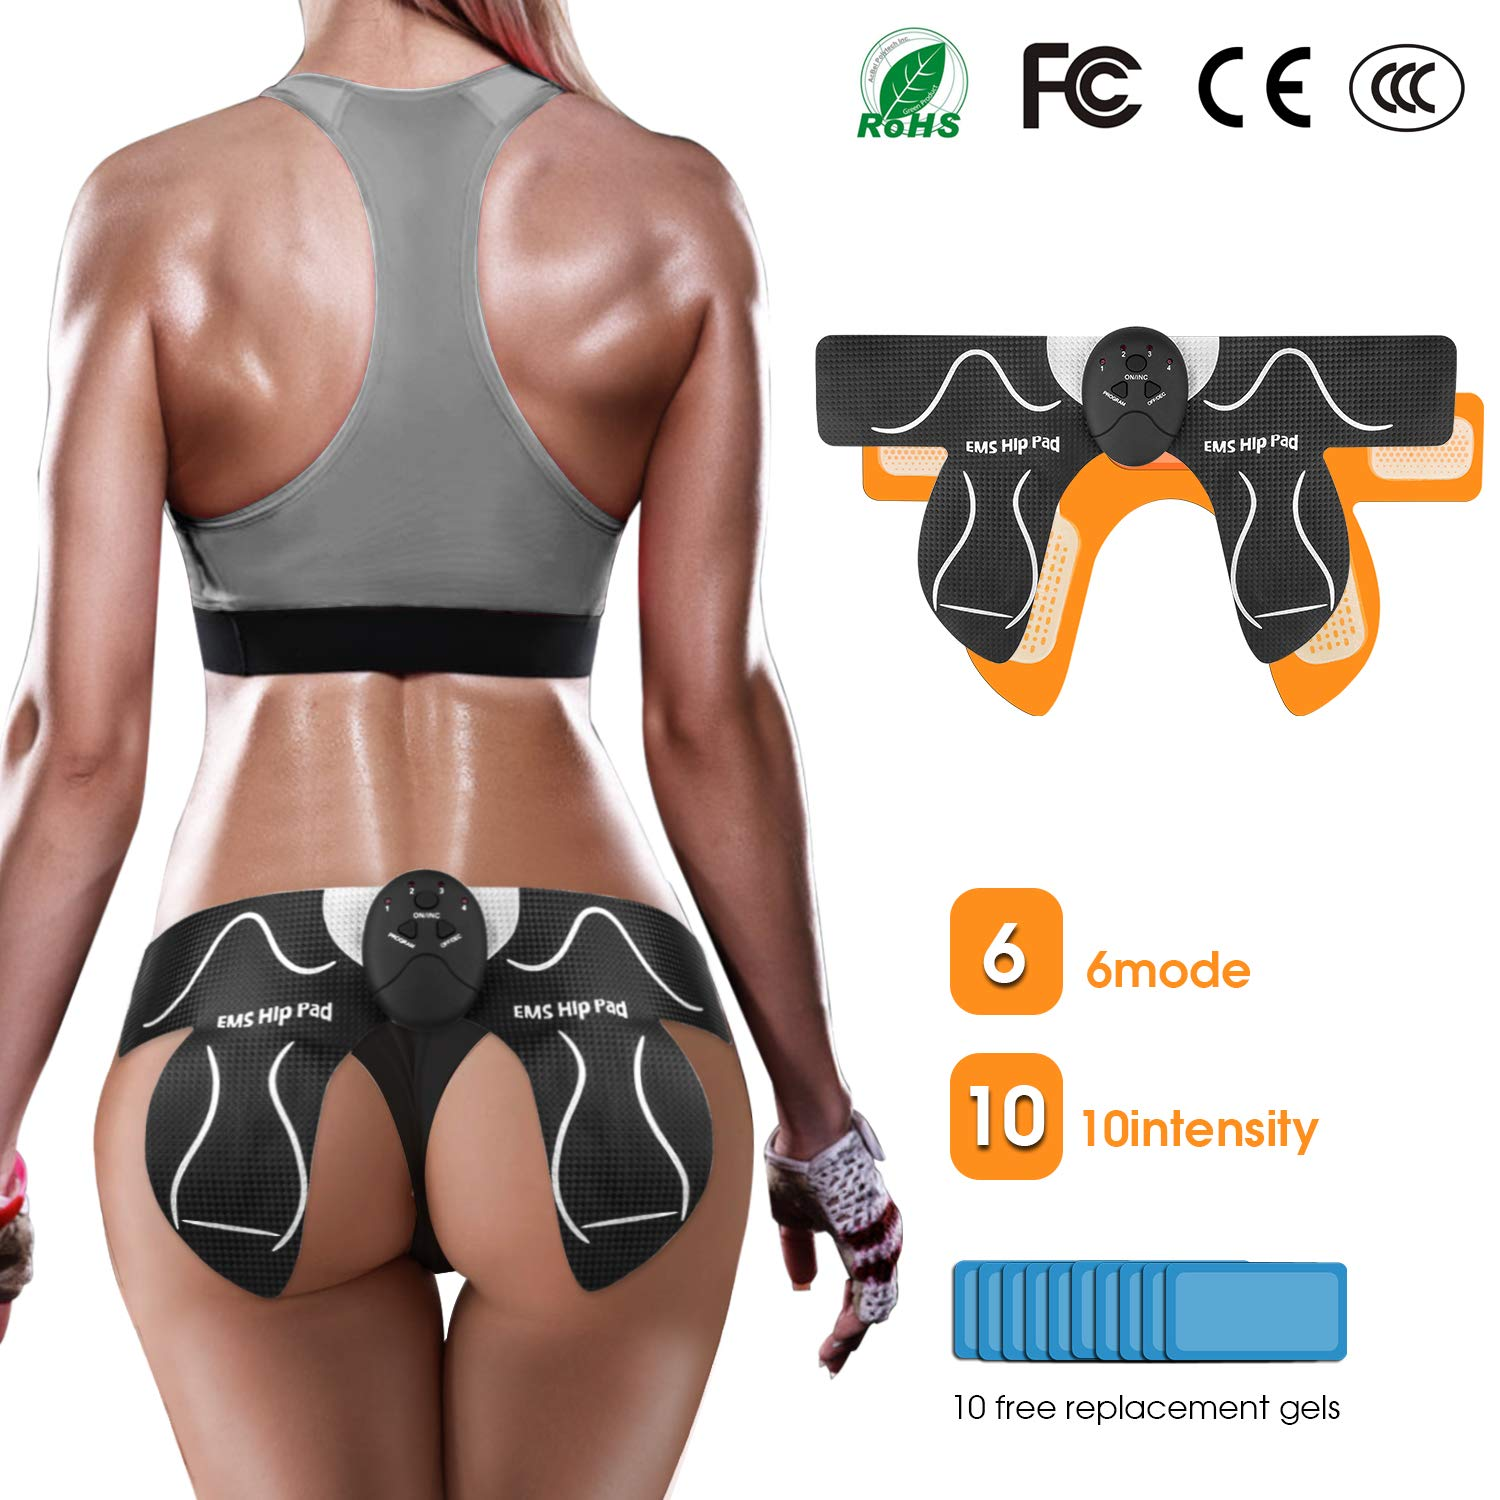 MOICO Butt Hips Trainer 2019 Upgrade Muscle Toner Fitness Training Gear Home Office Ab Trainer Workout Equipment Machine Fitness for Women Men,10pcs Free Gel Pads by MOICO